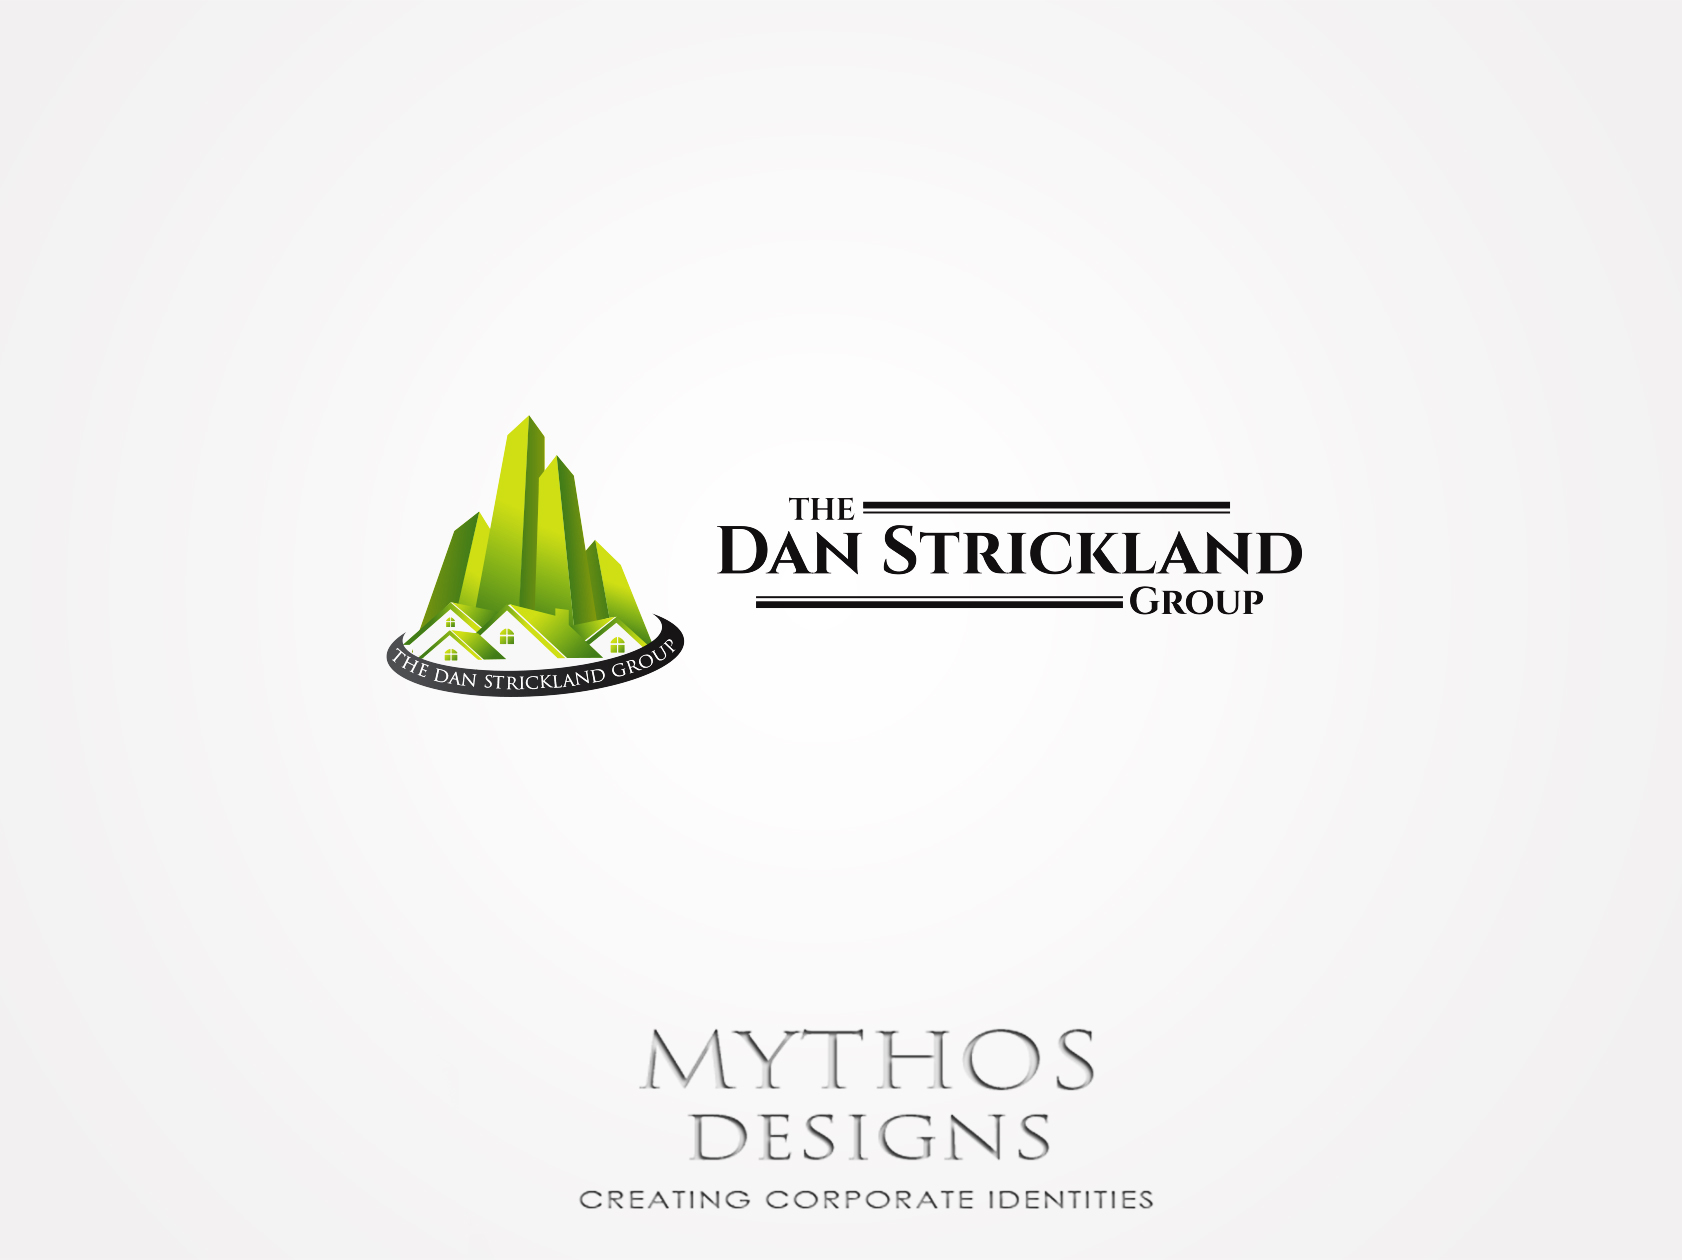 Logo Design by Mythos Designs - Entry No. 16 in the Logo Design Contest Creative Logo Design for The Dan Strickland Group.